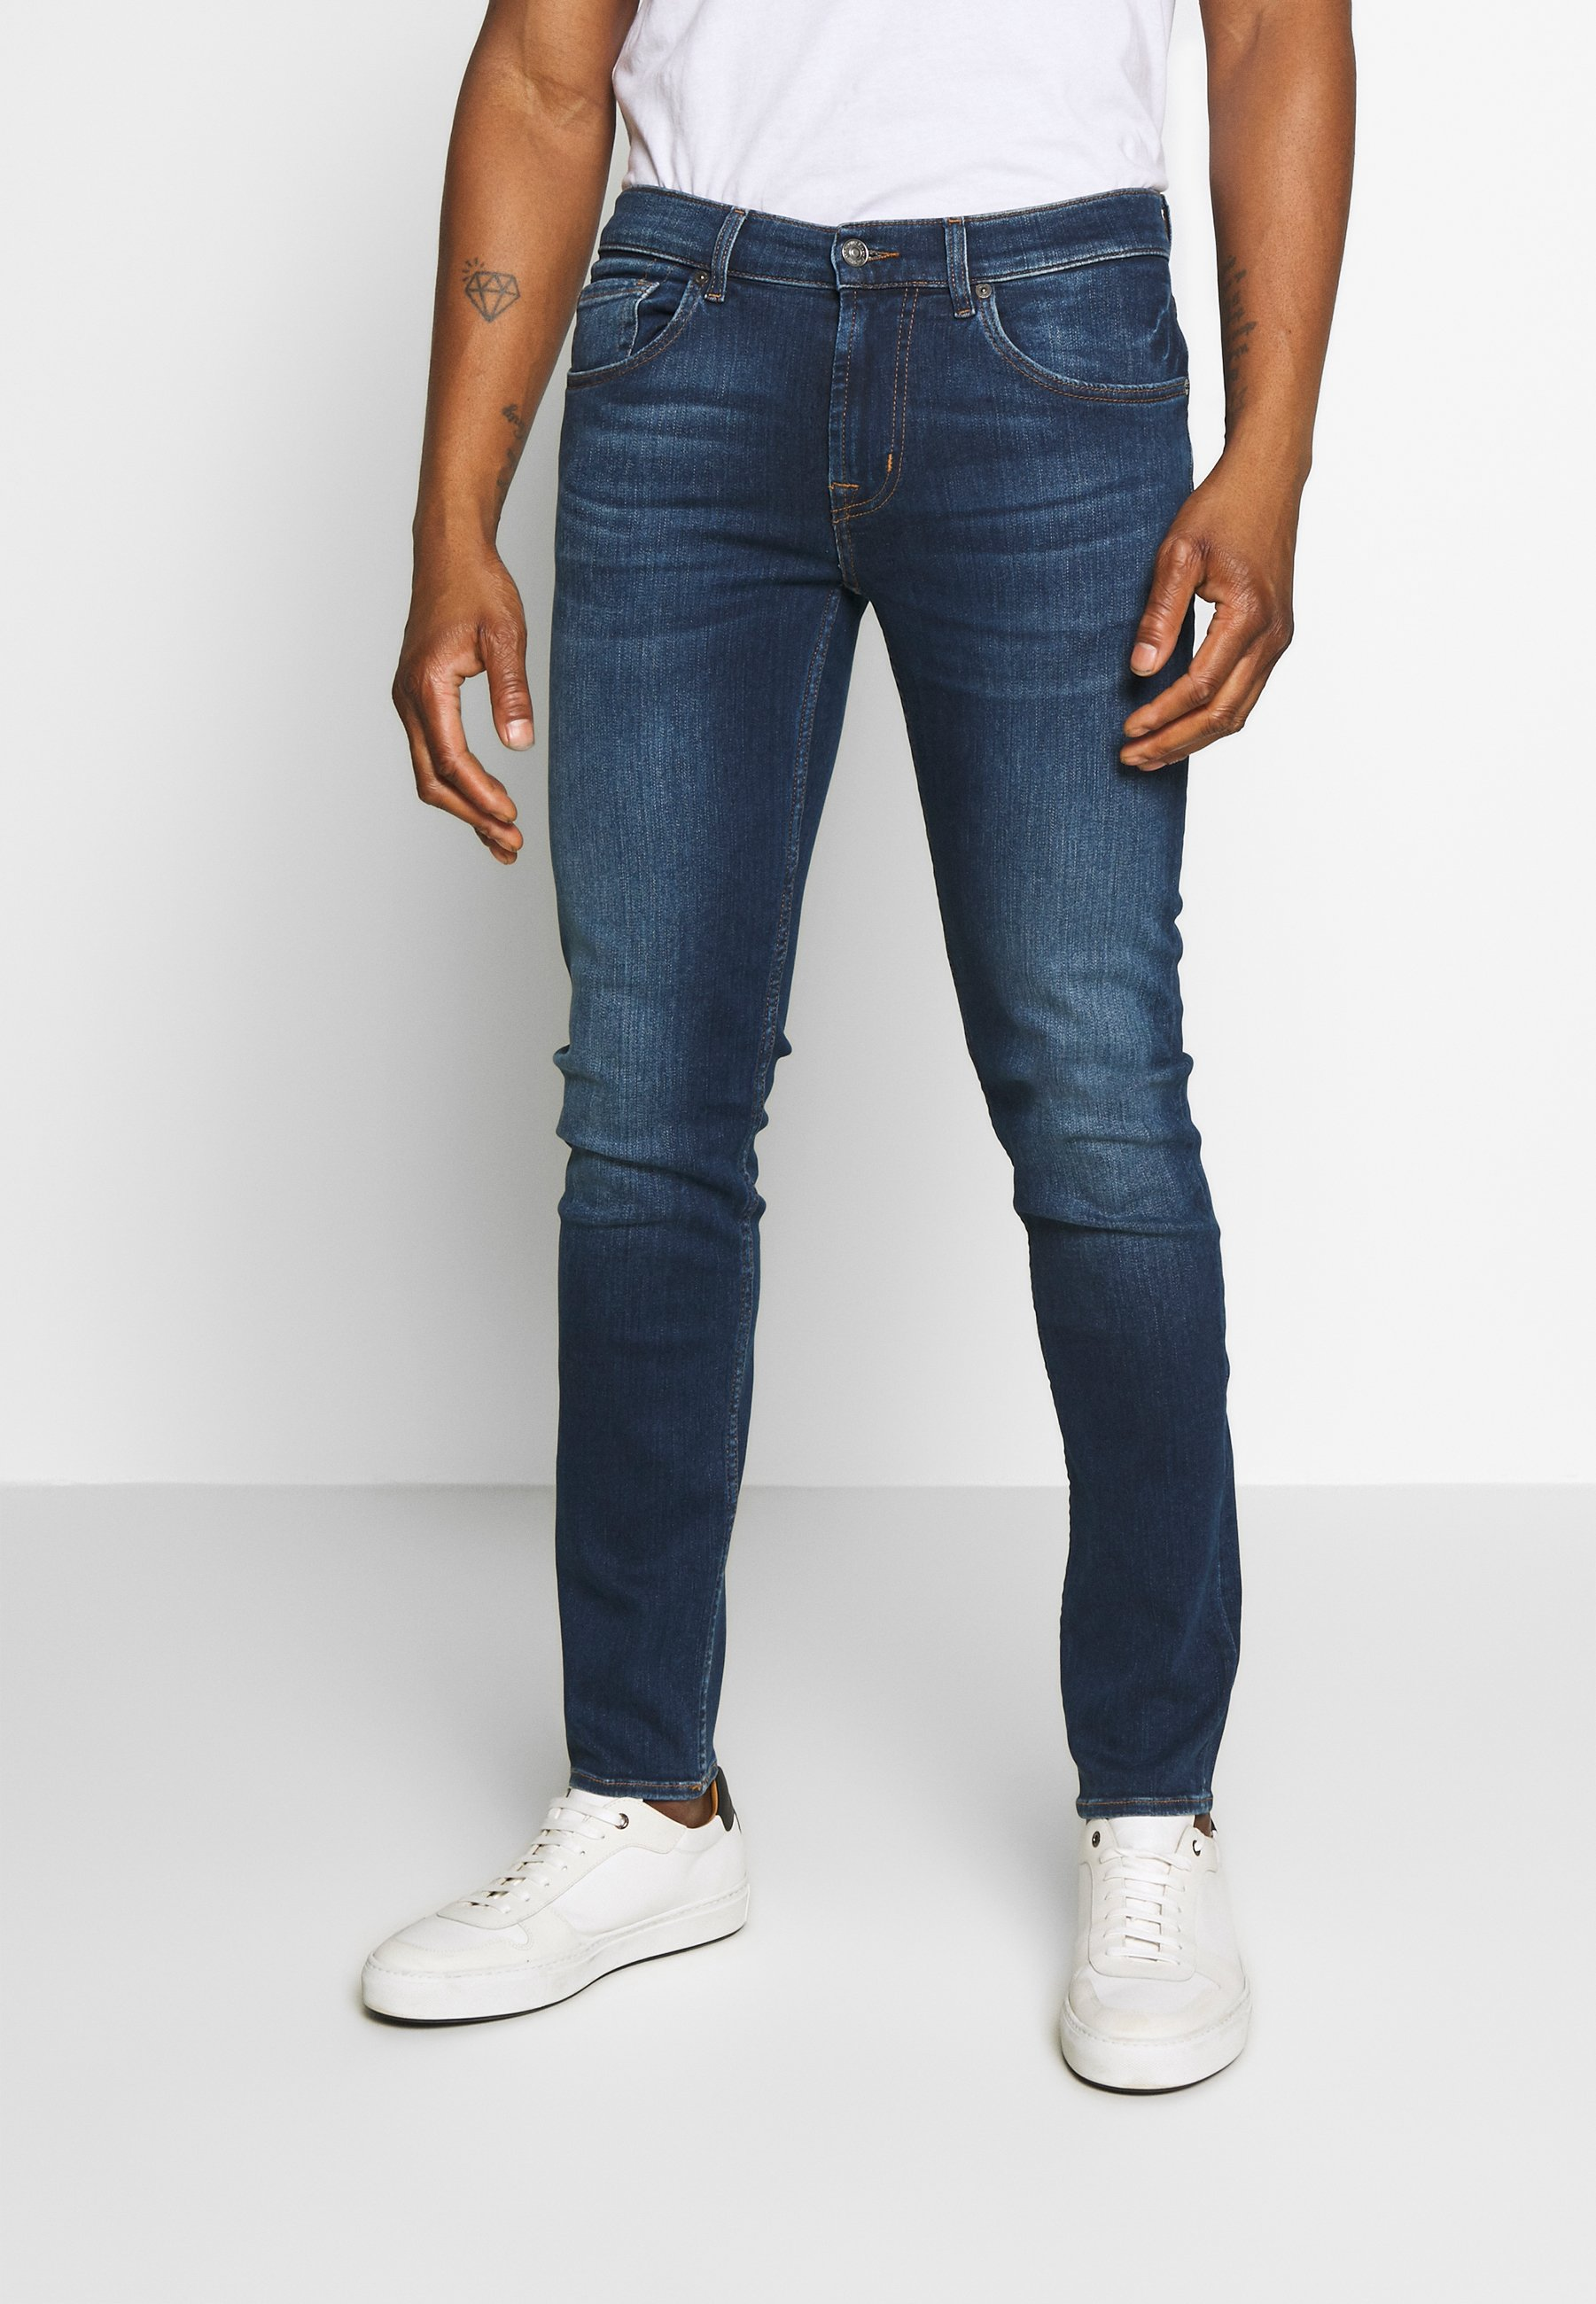 7 For All Mankind Jeans Tapered Fit - Dark Blue SSGwocu